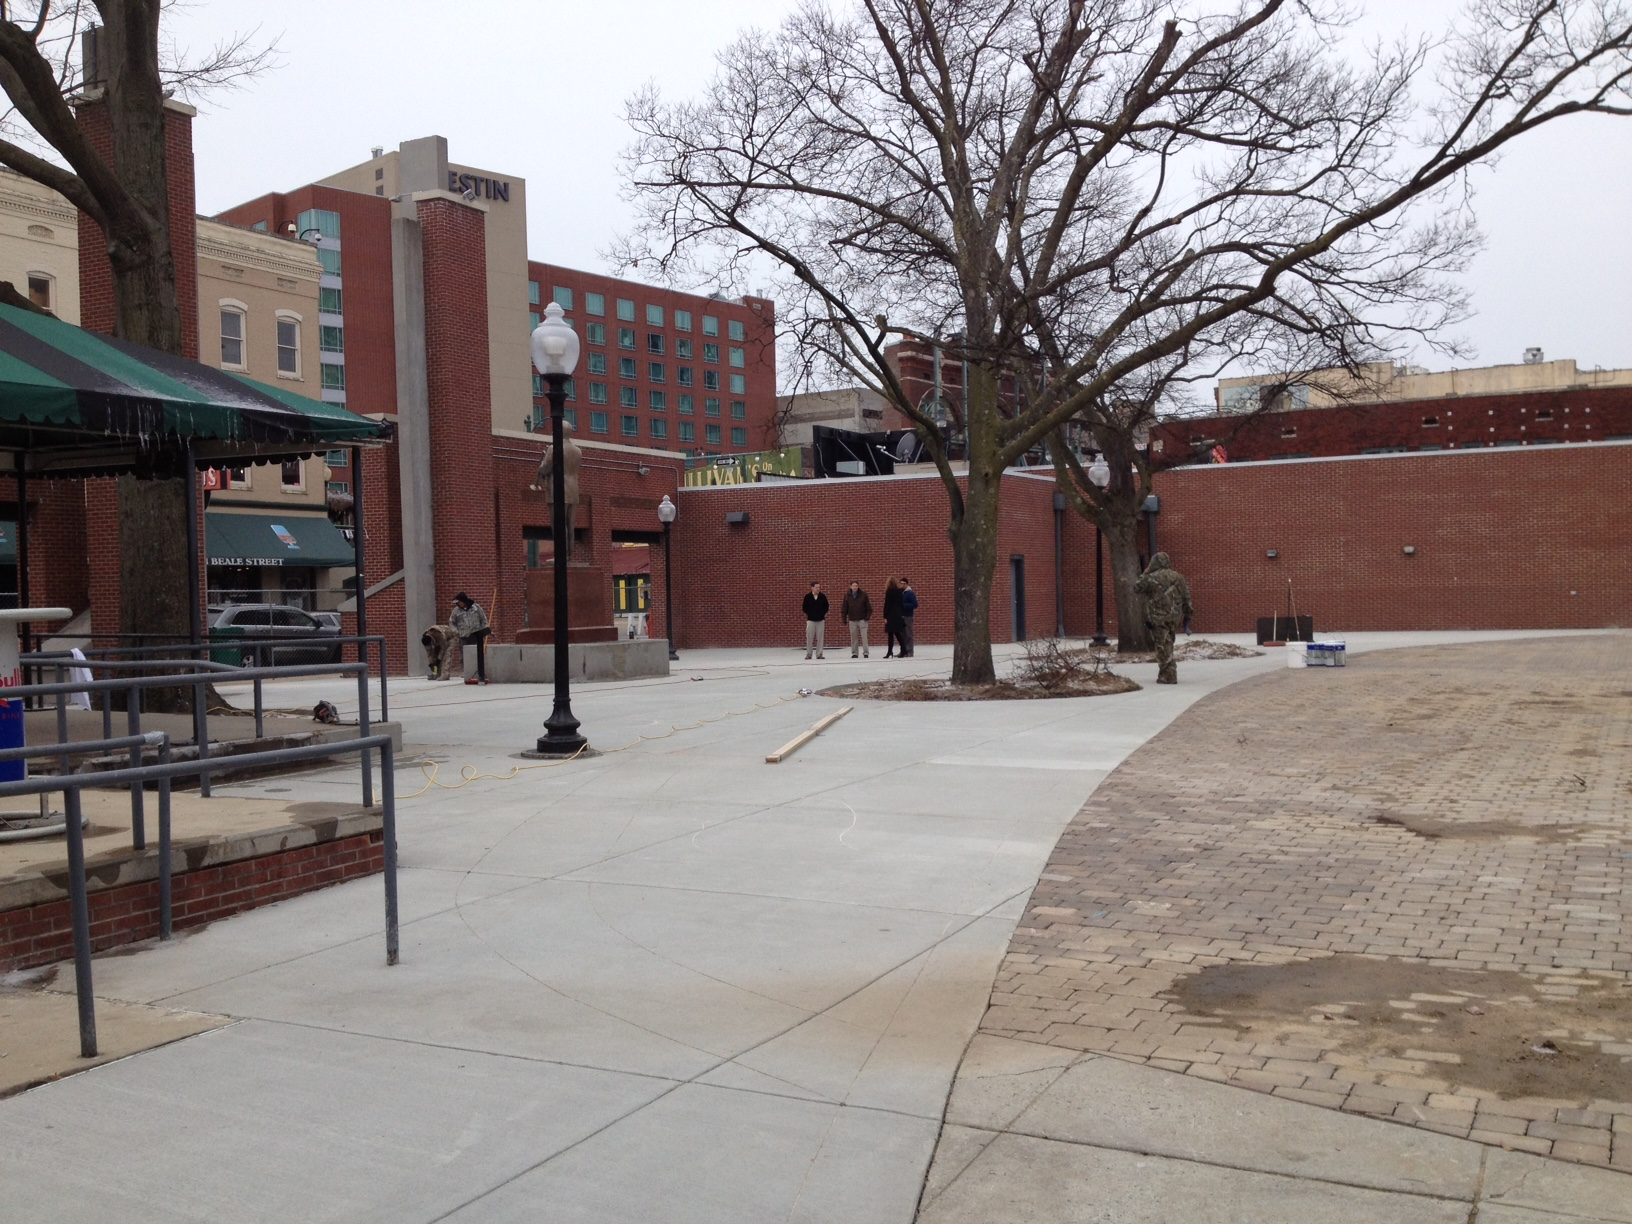 New paving and concrete paving designs give Handy Park an entirely new personality.